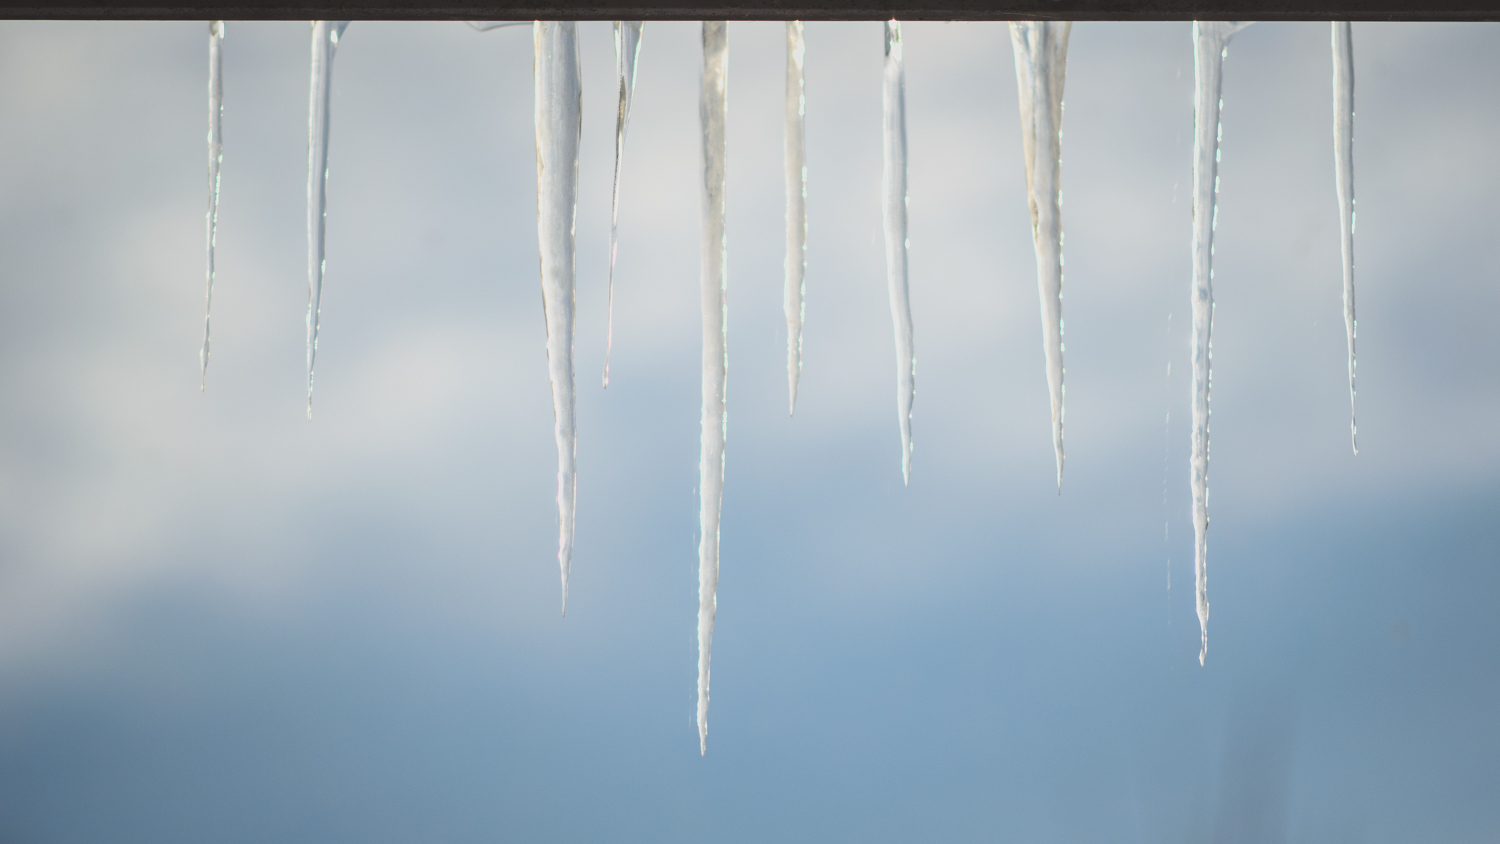 Image: These are the icicles during the afternoon.